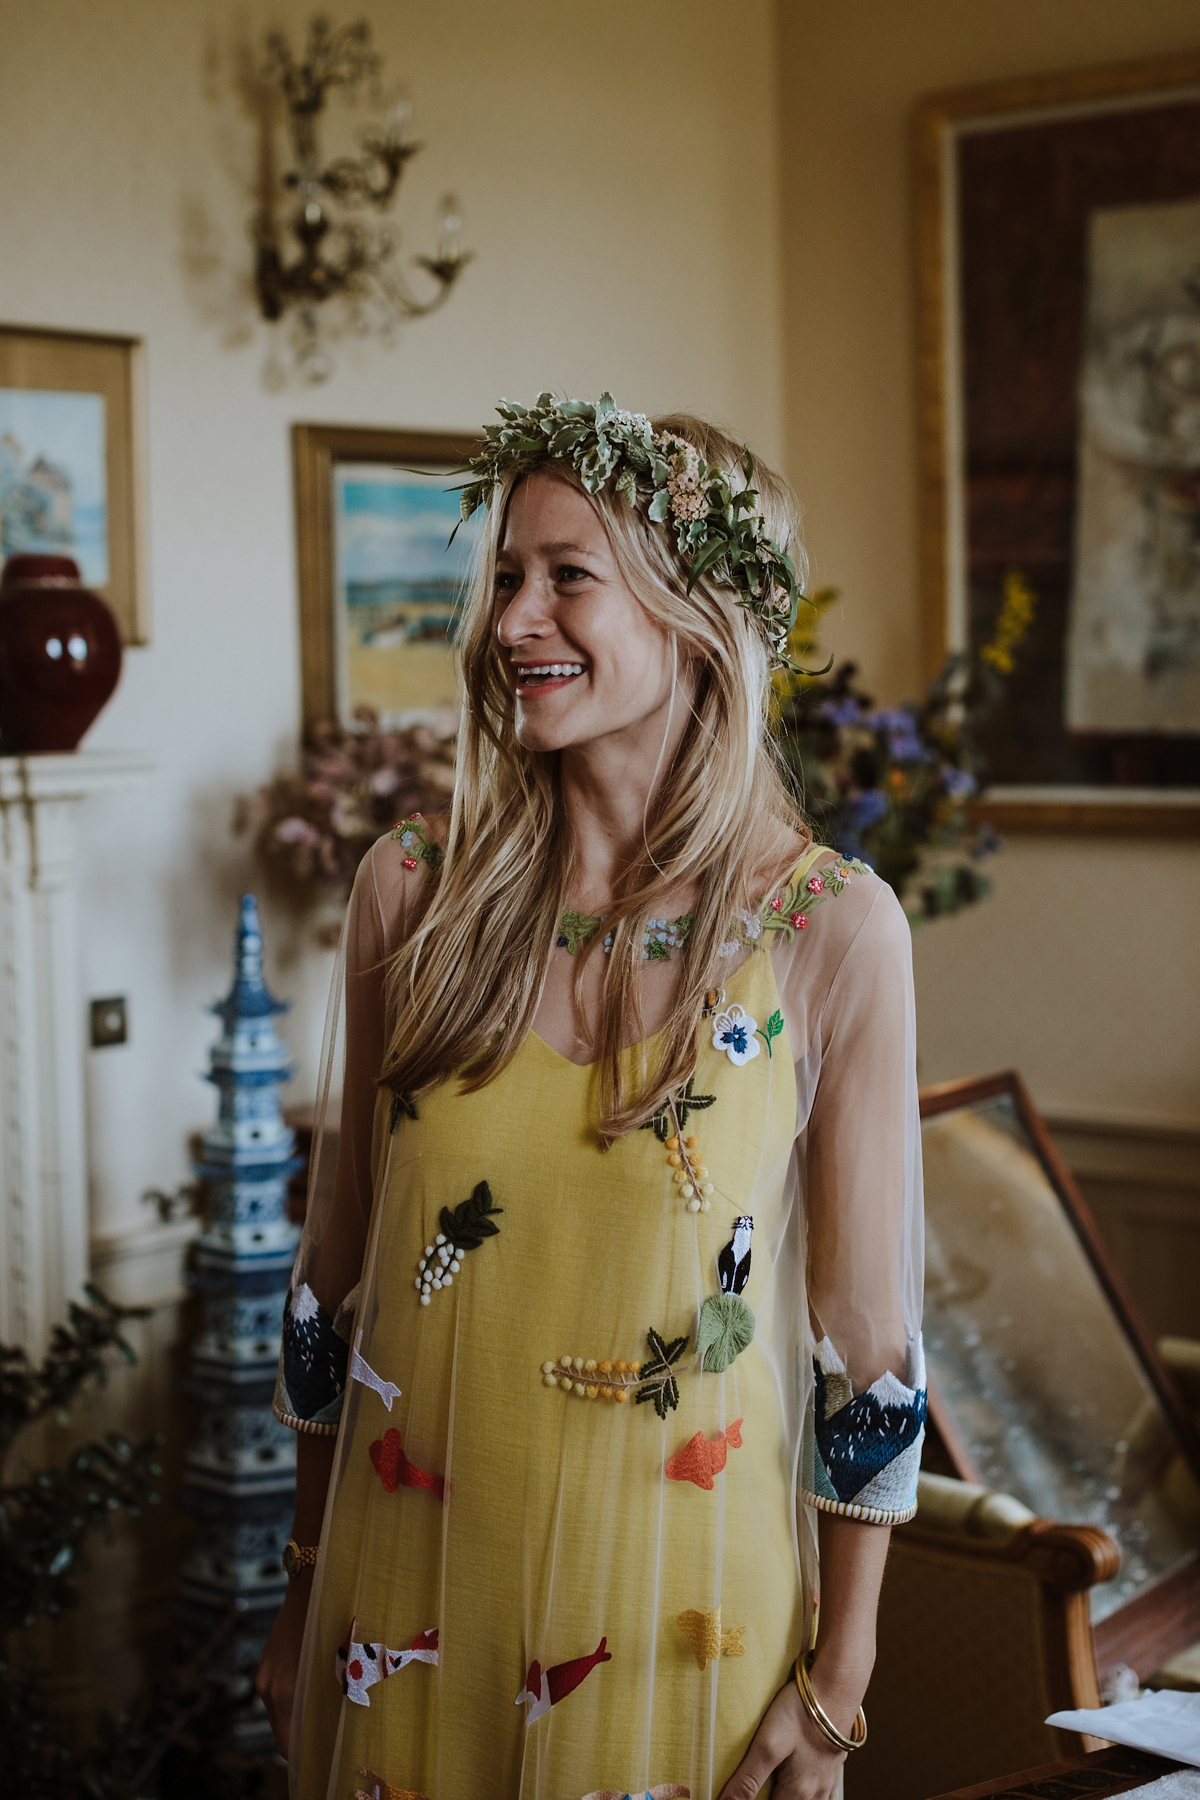 ec054cdaa4f Yellow floral embroidered dress Scottish wedding Caro Weiss Photography - A  Scottish Garden Handfasting + Yellow